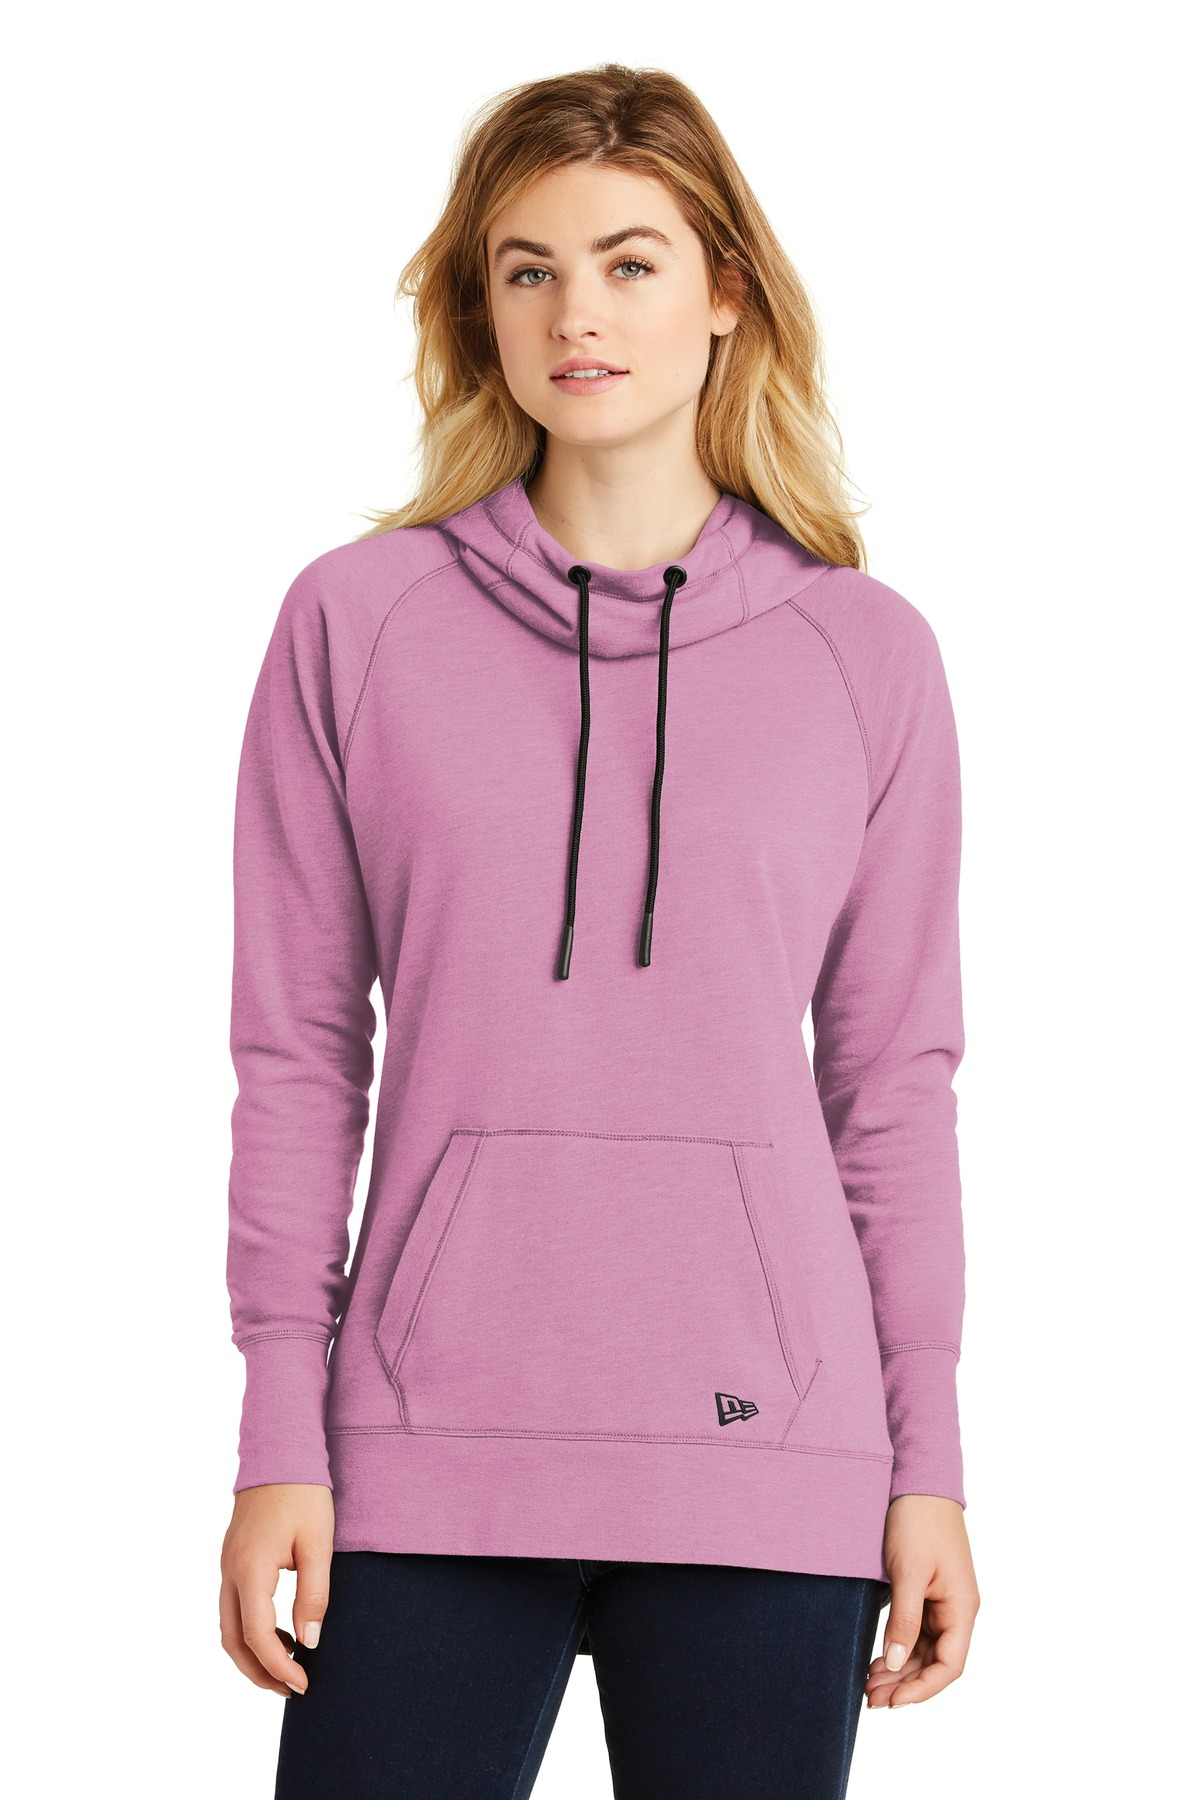 New Era  ®  Ladies Tri-Blend Fleece Pullover Hoodie. LNEA510 - Lilac Heather